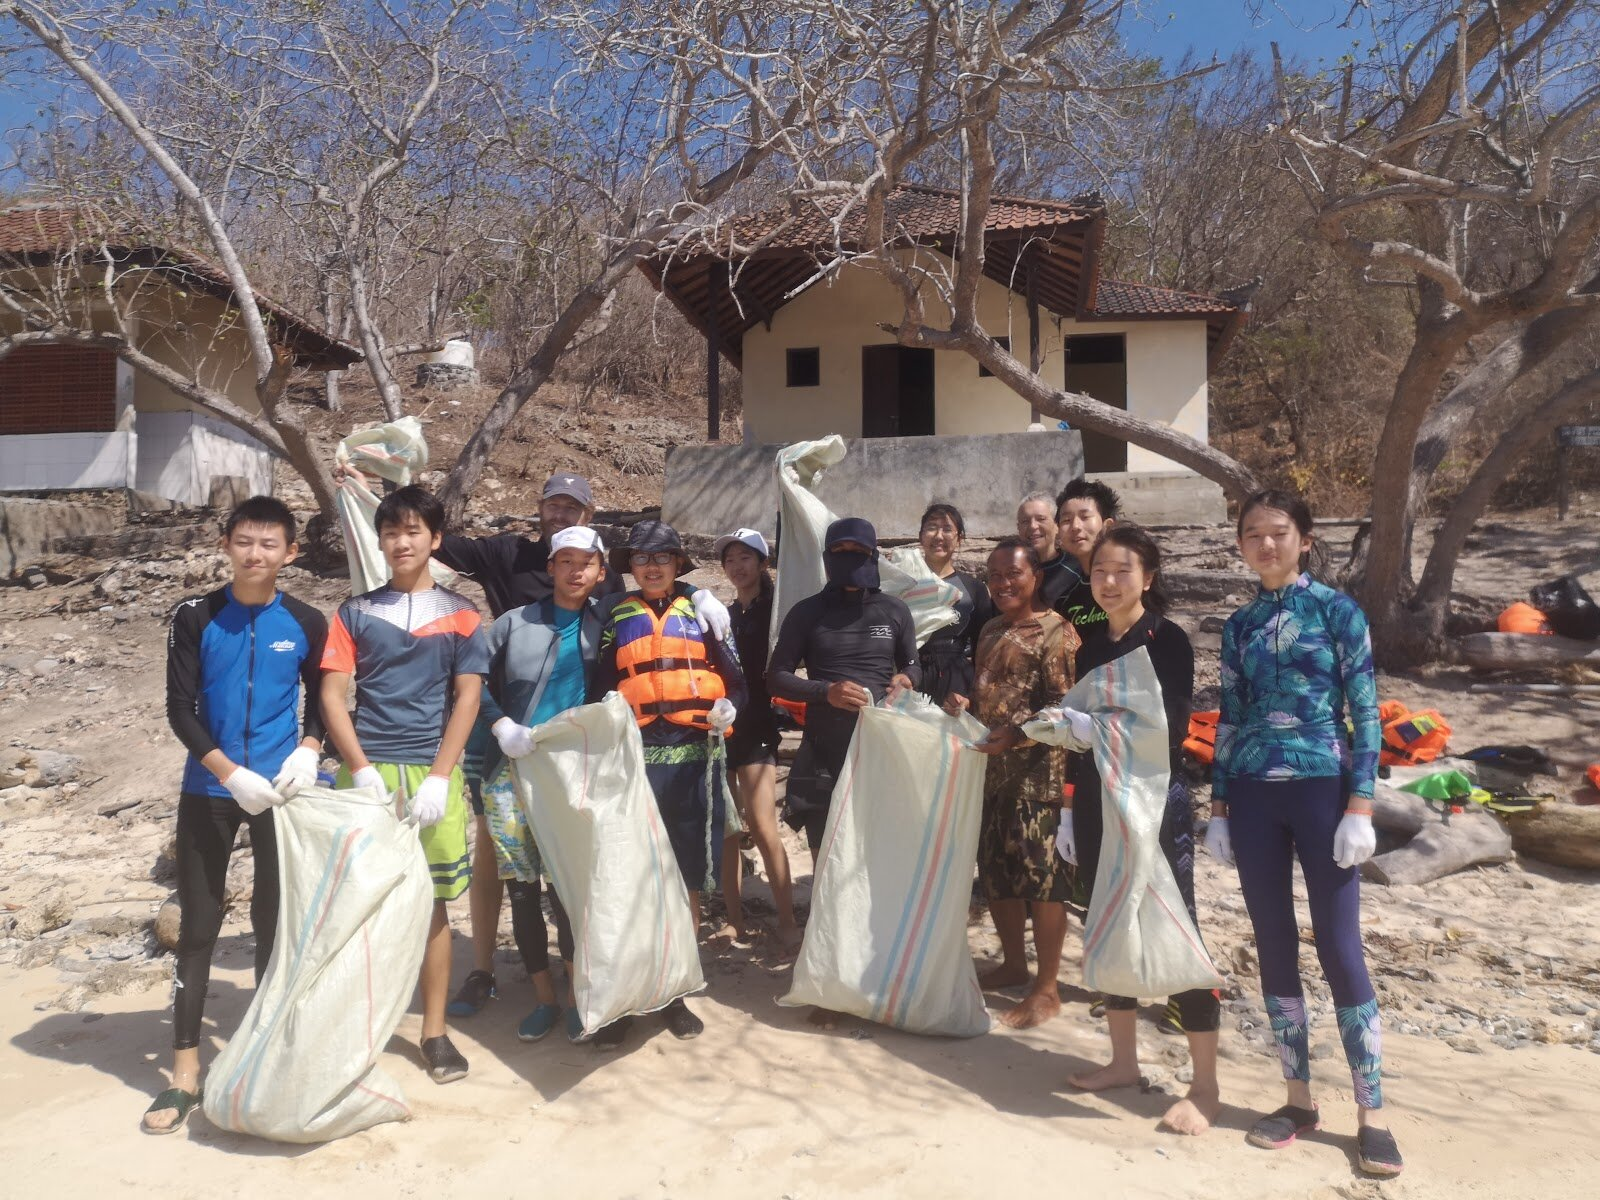 Keystone youths lending their hands and efforts in a beach clean-up, alongside the trash management advocates from Biosphere Foundation